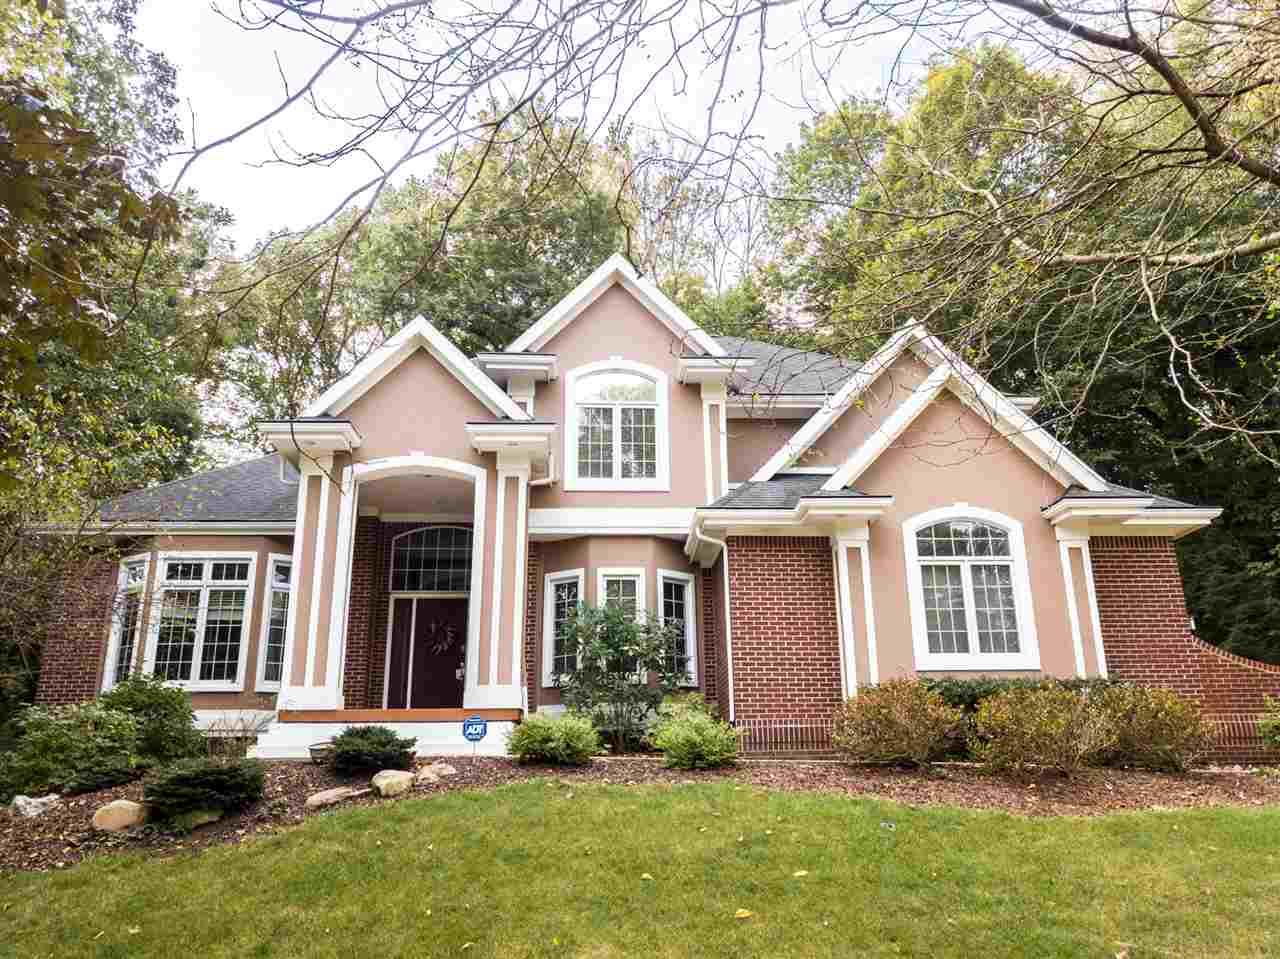 628 Shady Creek Dr Lafayette Home Listings - The Russell Company Real Estate